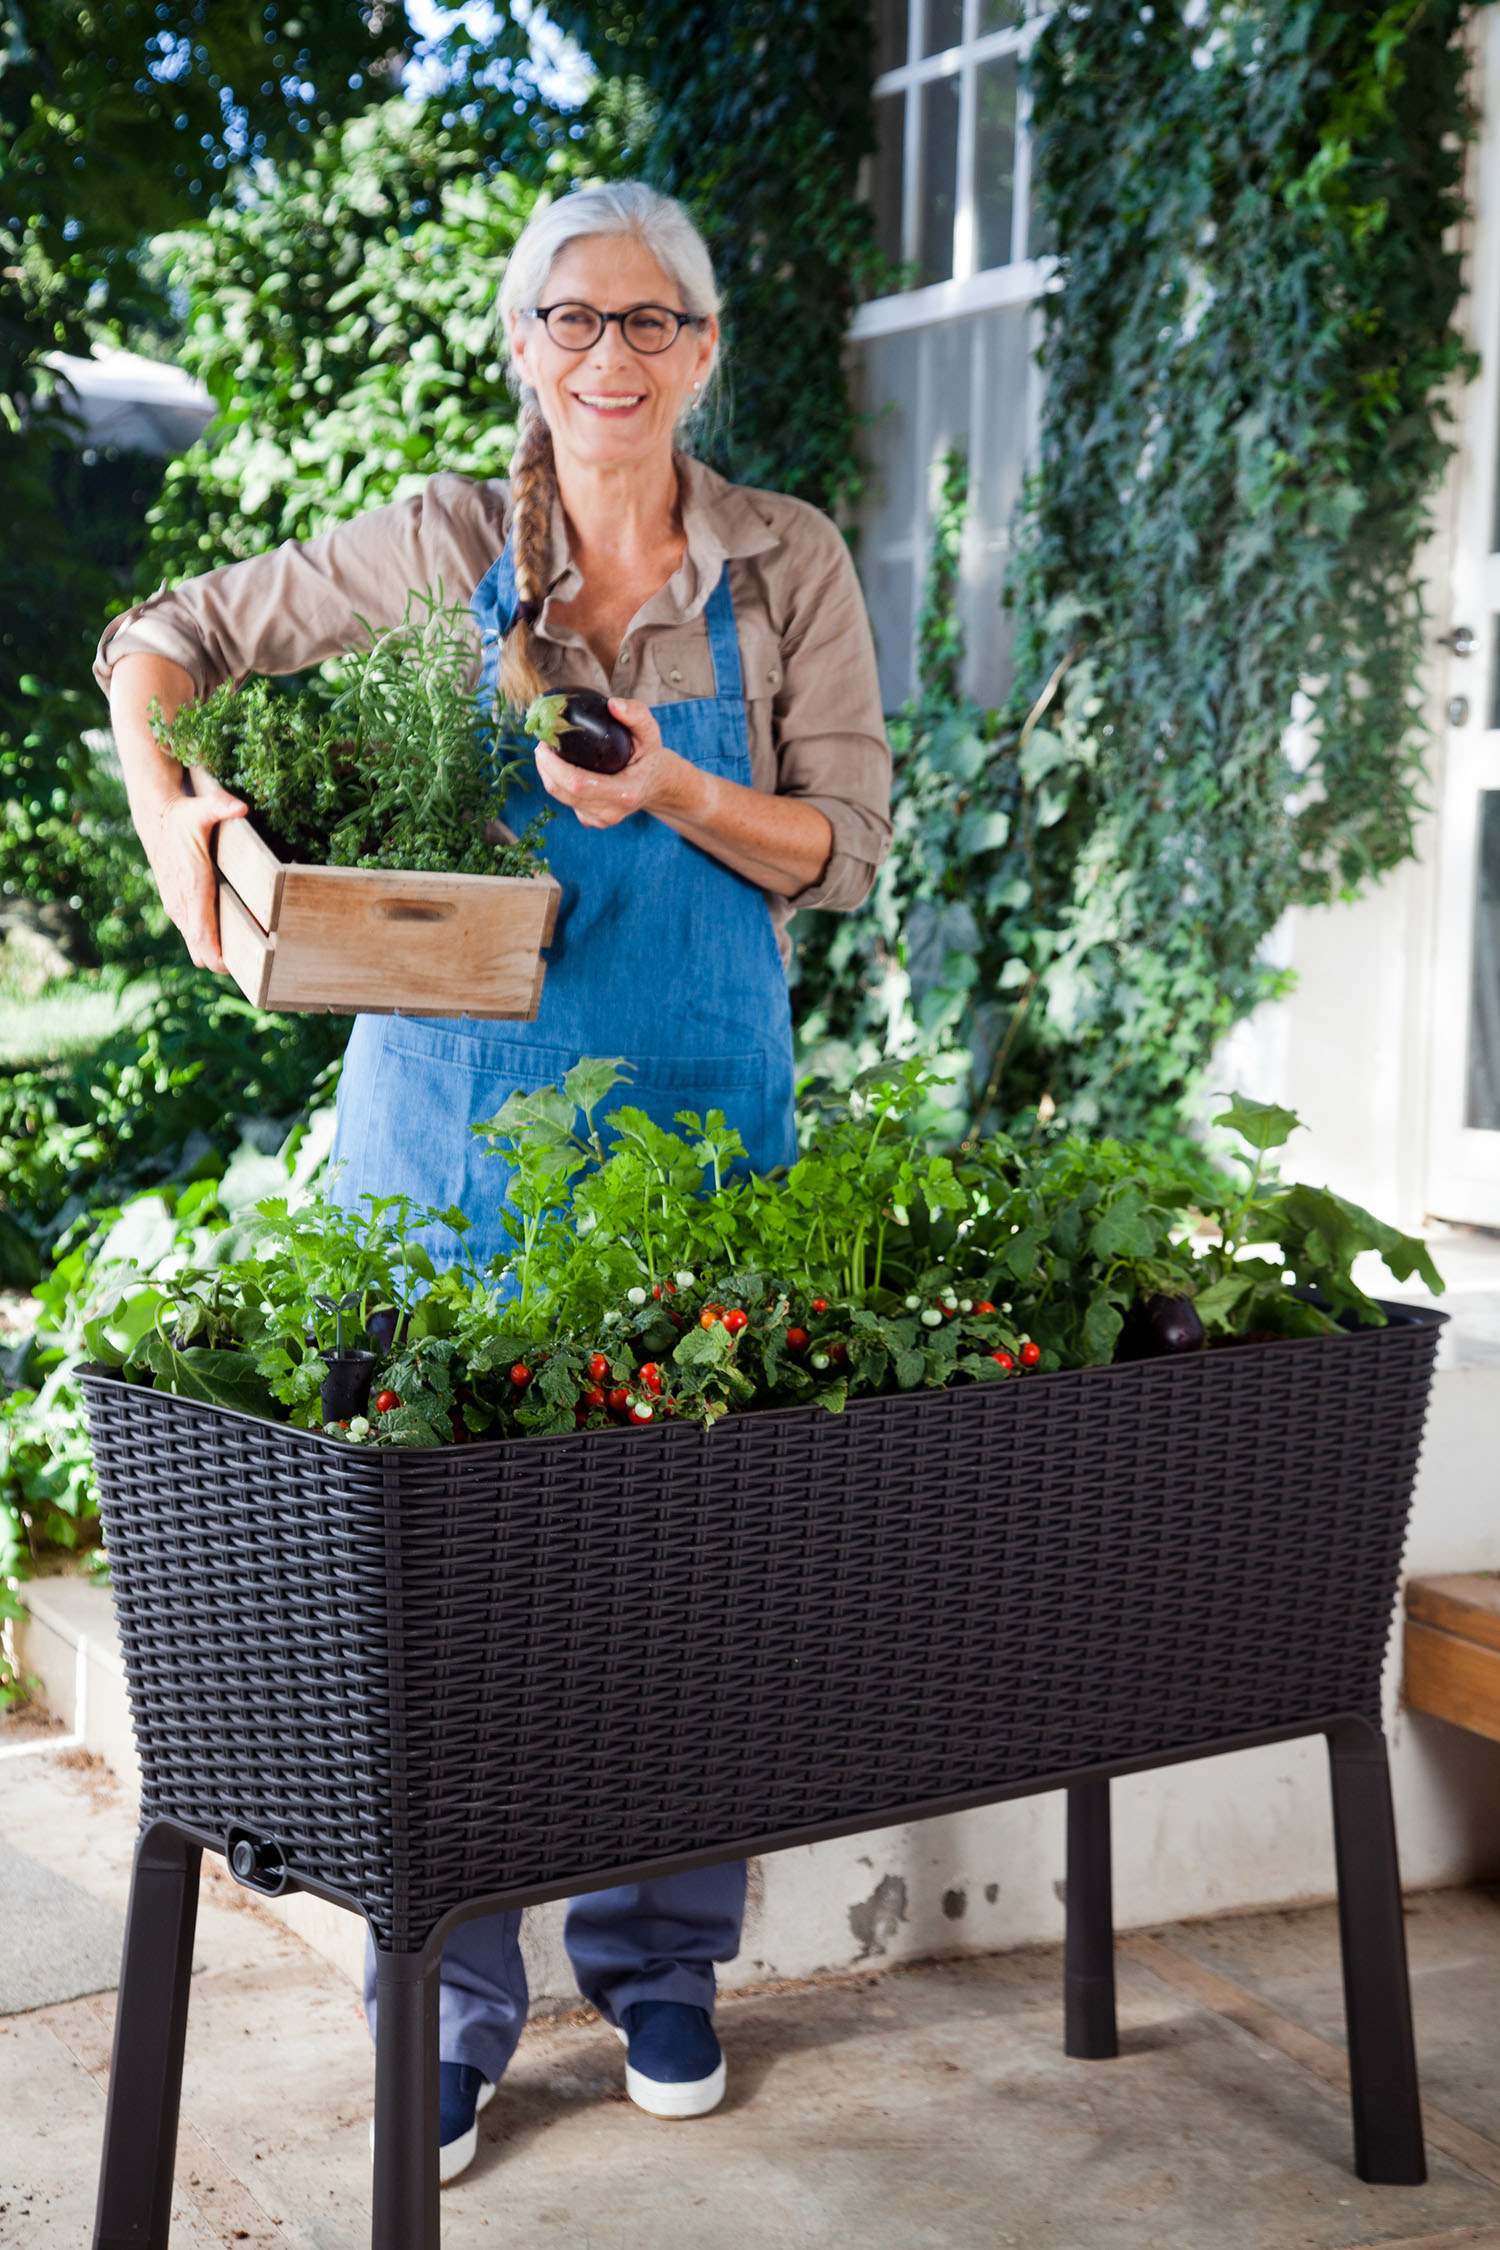 Model standing behind a raised black planter filled with green plants